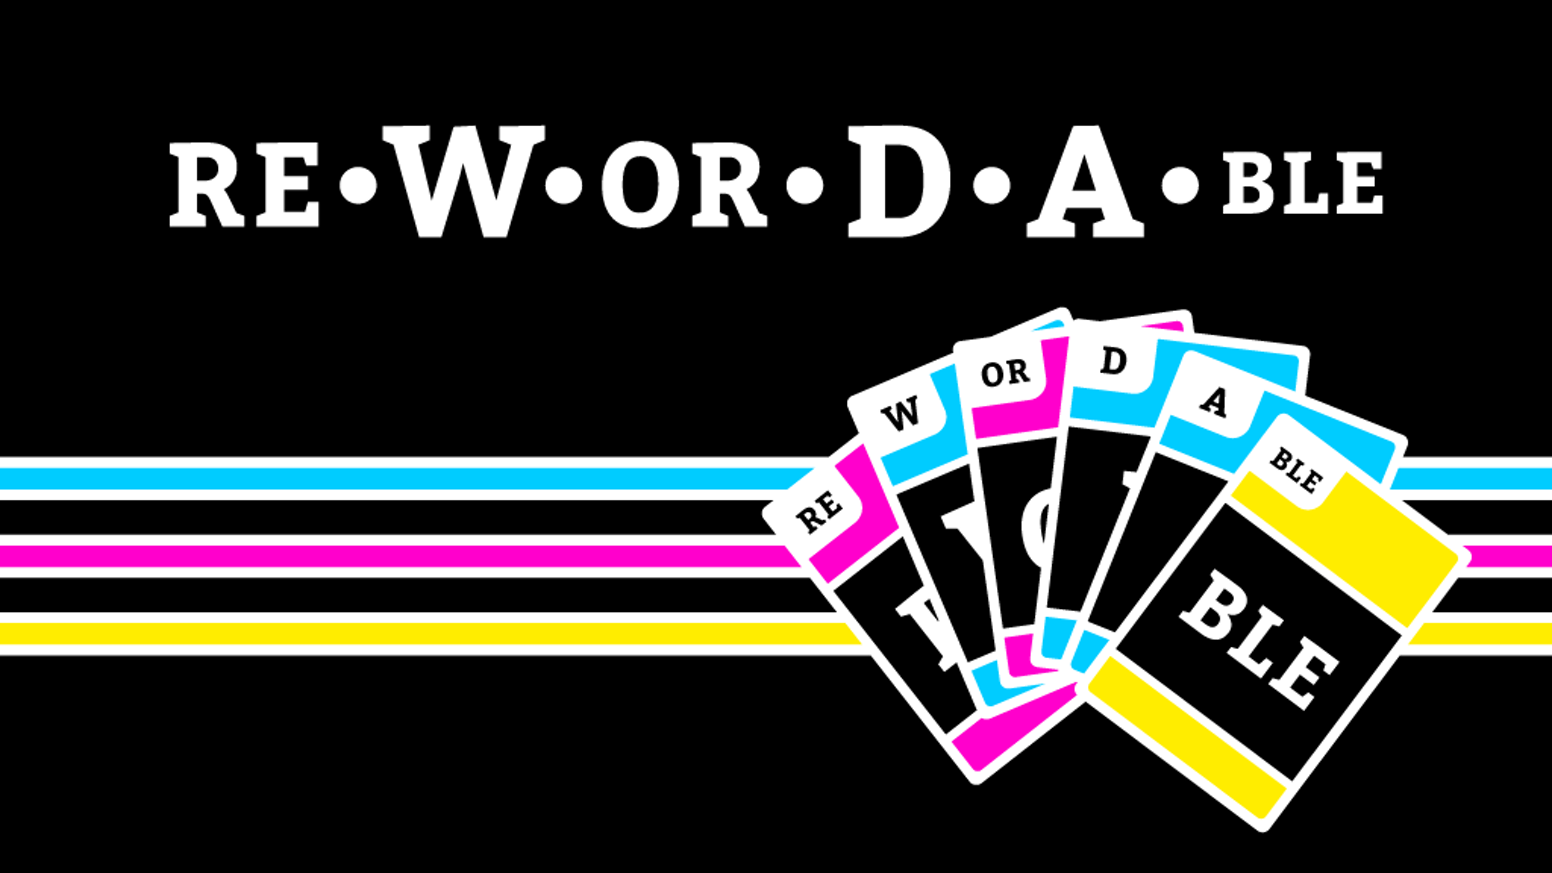 rewordable is a uniquely fragmented word building card game designed for making longer